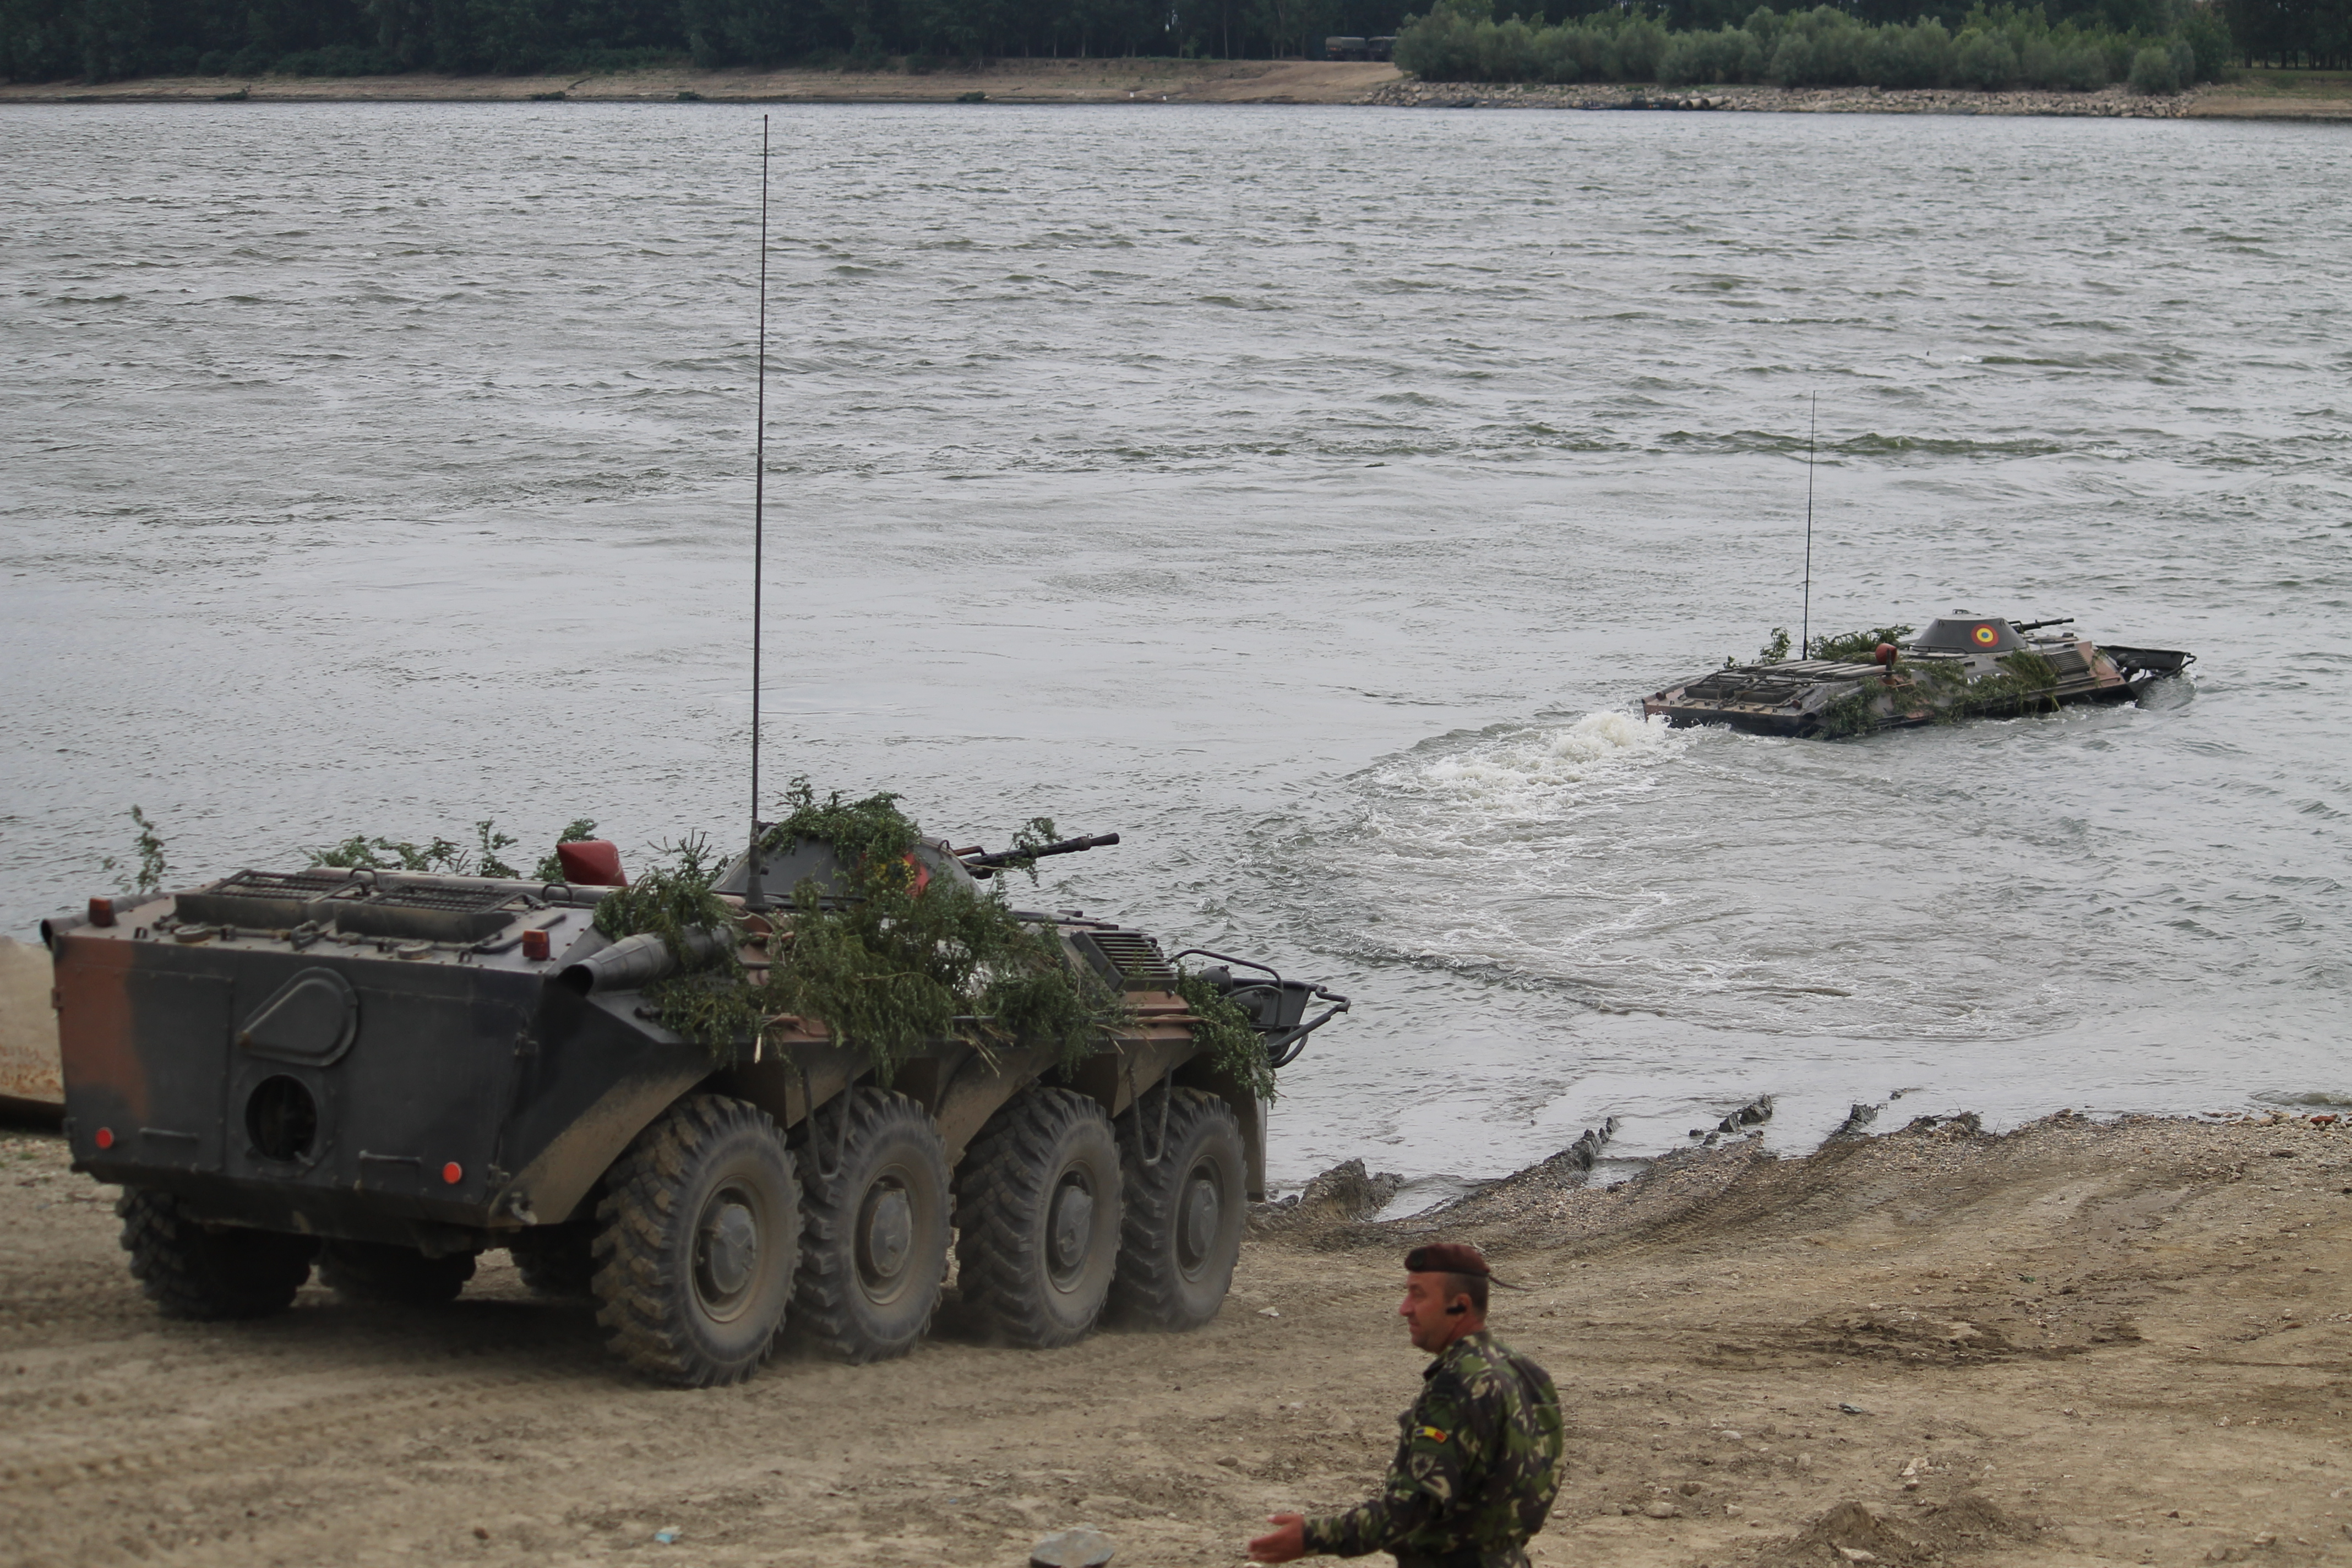 Romanian BTR armored vehicles move into the river as troops fire their guns. Using armored vehicles to swim the Danube is a move the Soviets developed in the Warsaw Pact and practiced regularly. The Romanians brought back the capability during the exercise using an entire company of BTRs. (Jen Judson/Staff)